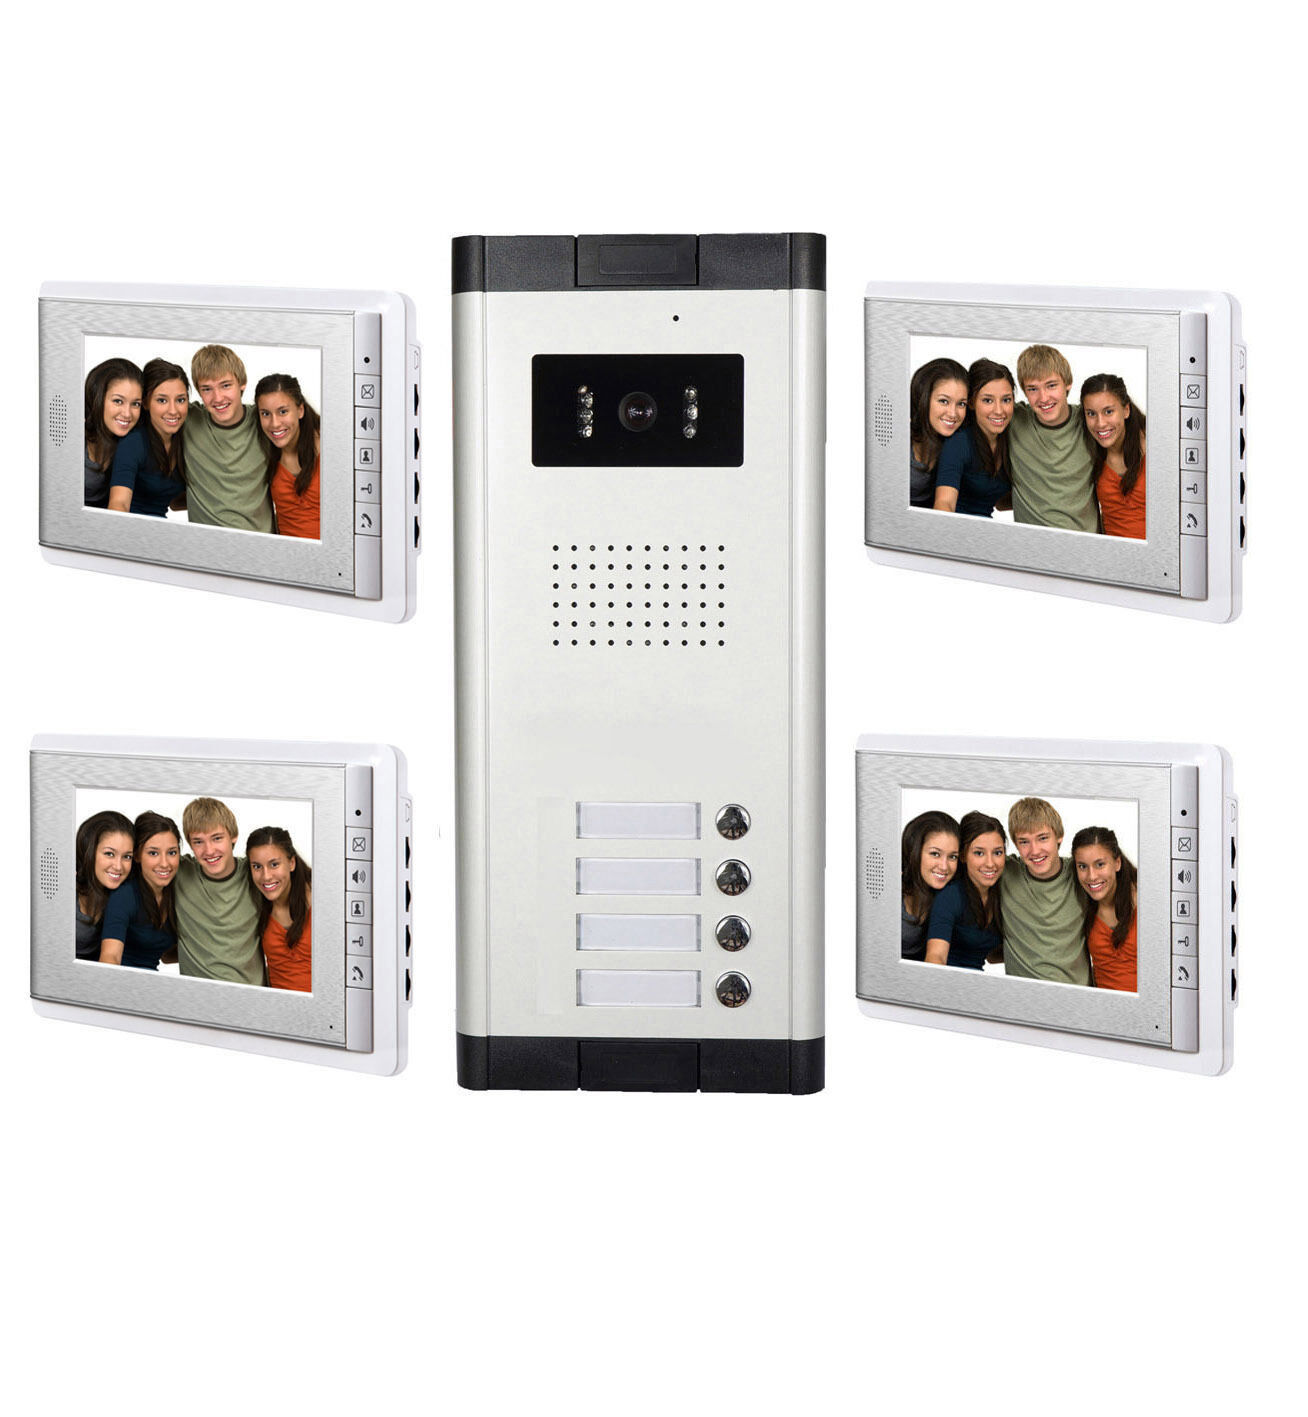 2 12 unit wired apartment video intercom doorbell